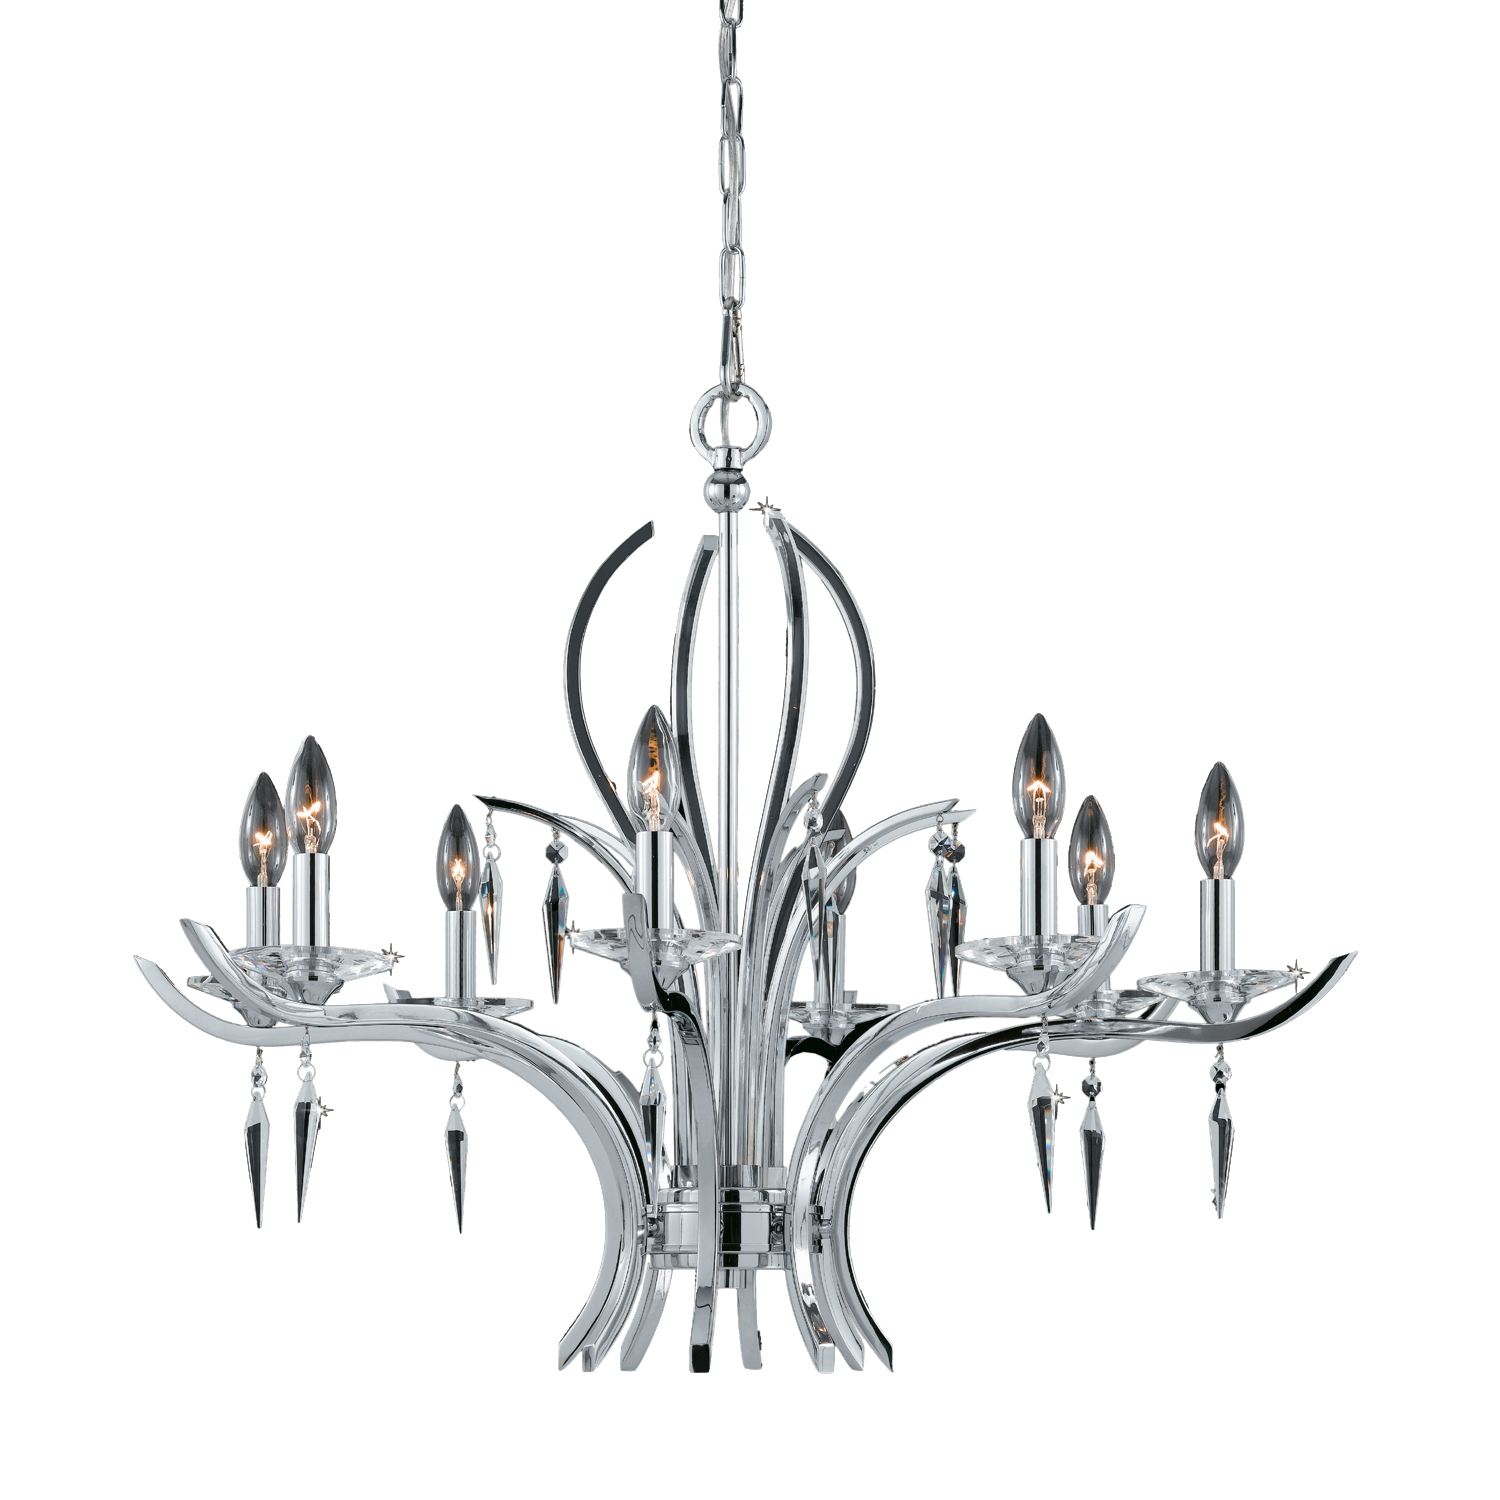 Lumenno Int Paris Collection 8 Light Chandelier In A Polished Chrome Finish Chrome Plated Finish